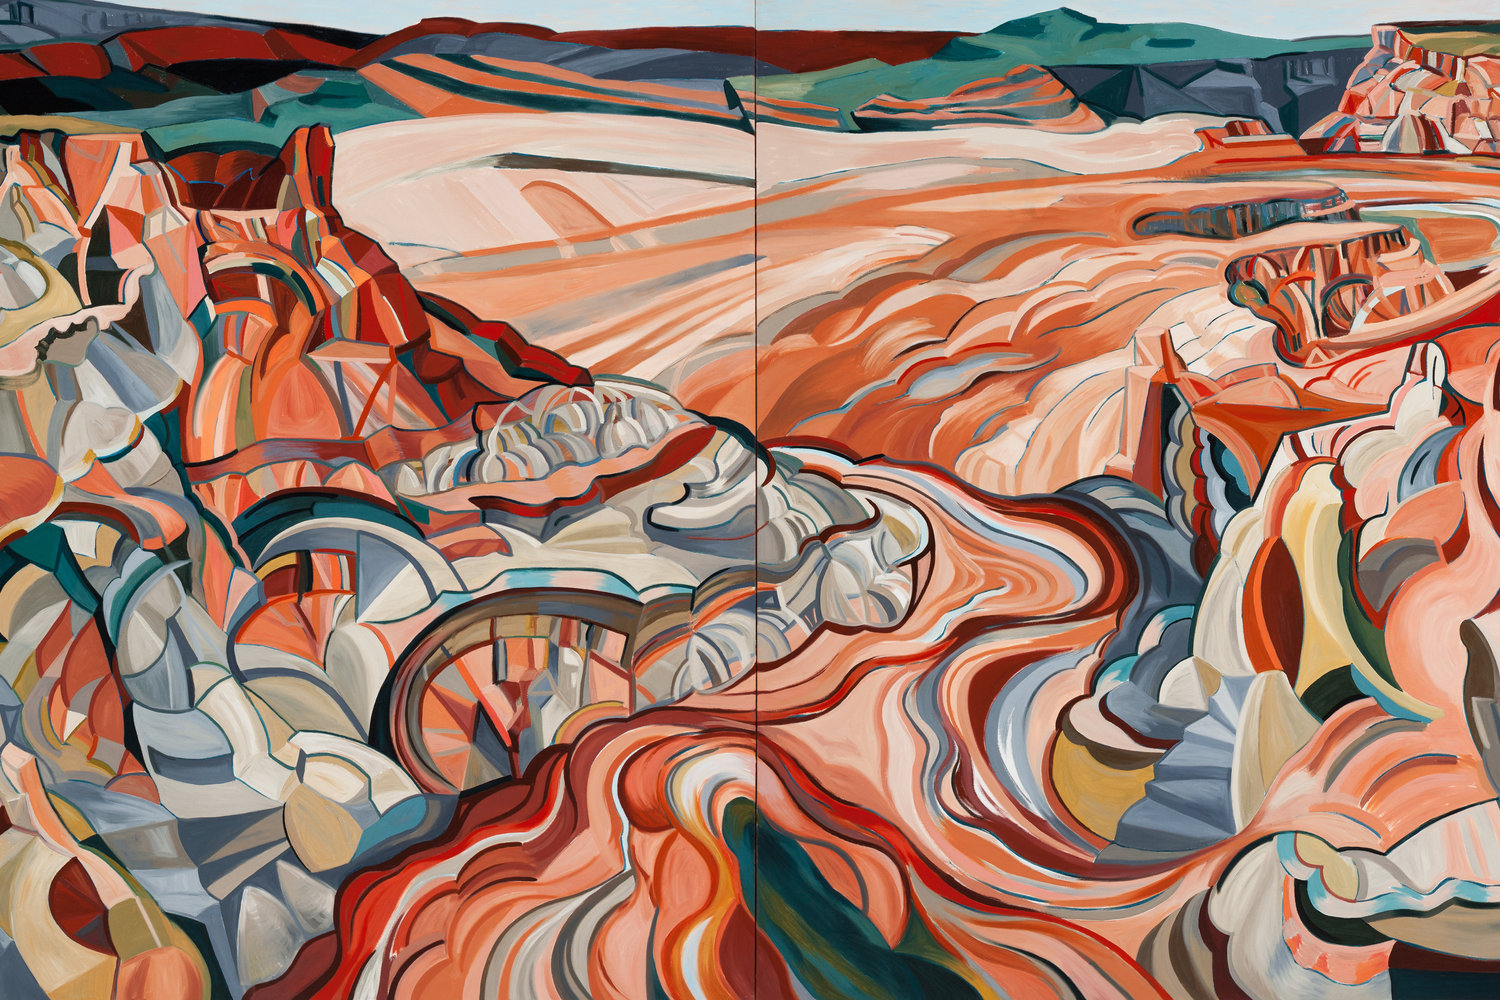 Sangeeta_Reddy_Overlooking_Canyon_Lands_2014_oil_on_canvas_dyptich_60x120in.jpg